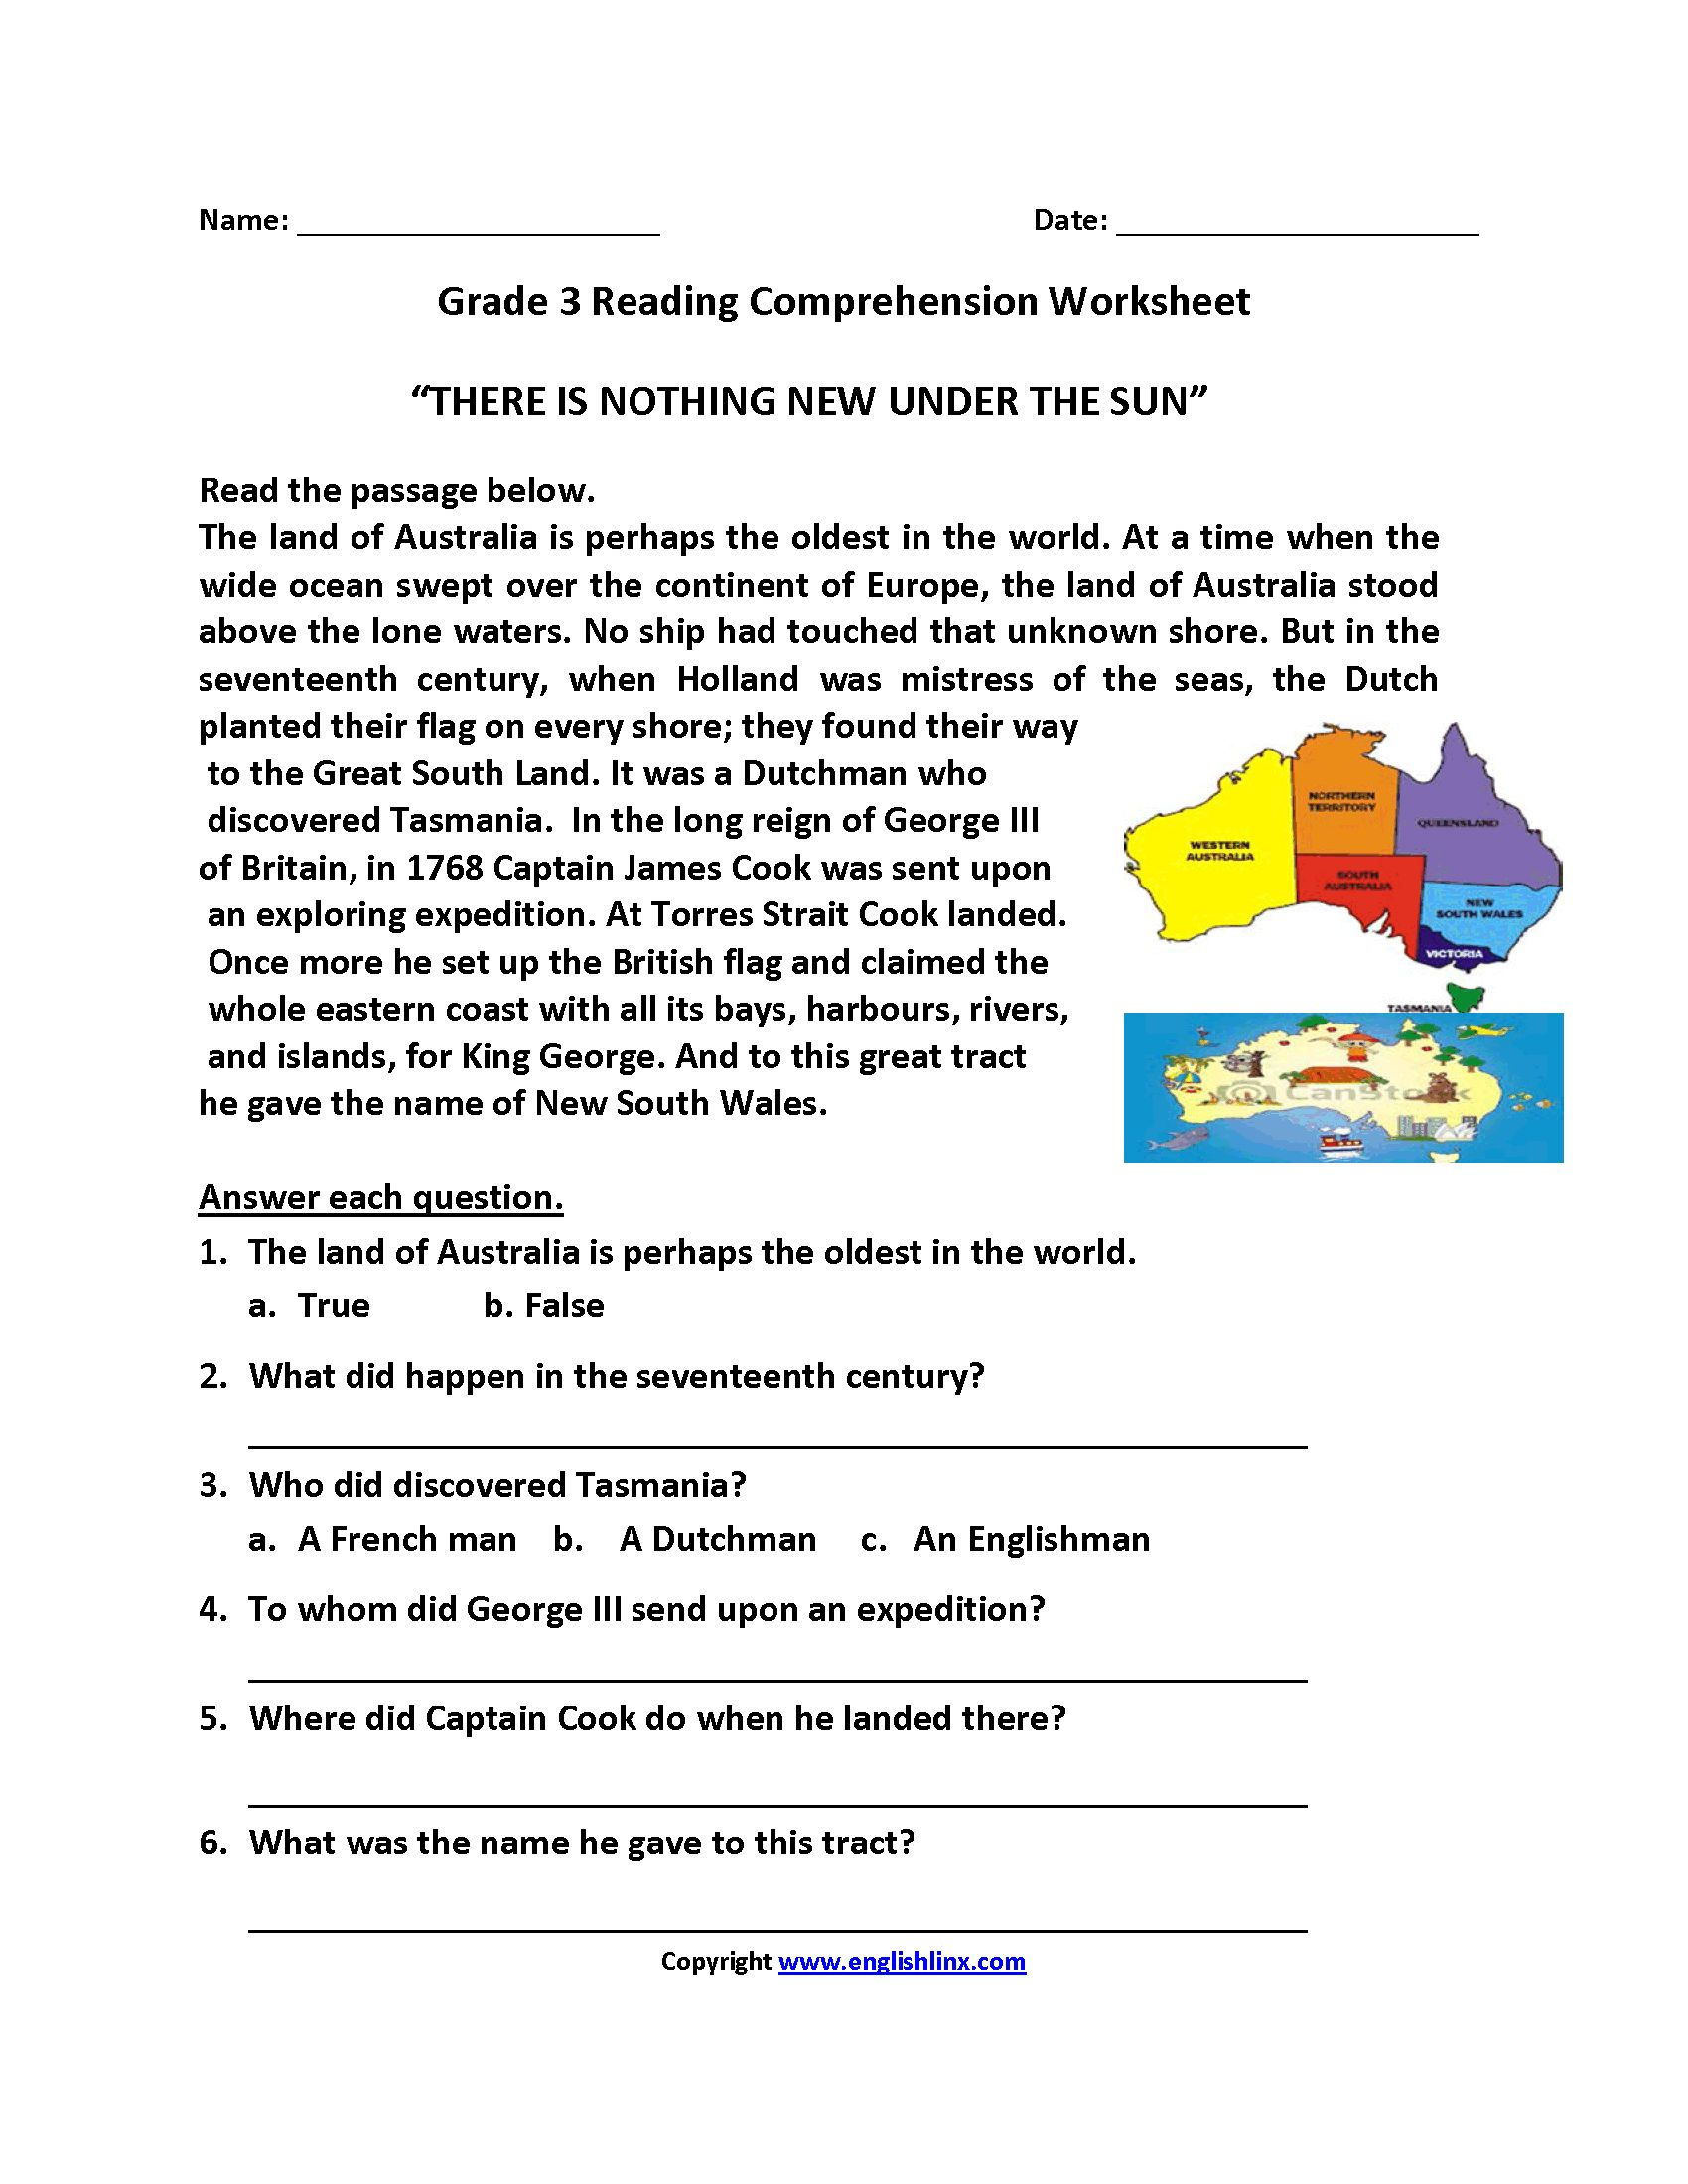 3Rd Grade Reading Comprehension Worksheets Multiple Choice ...